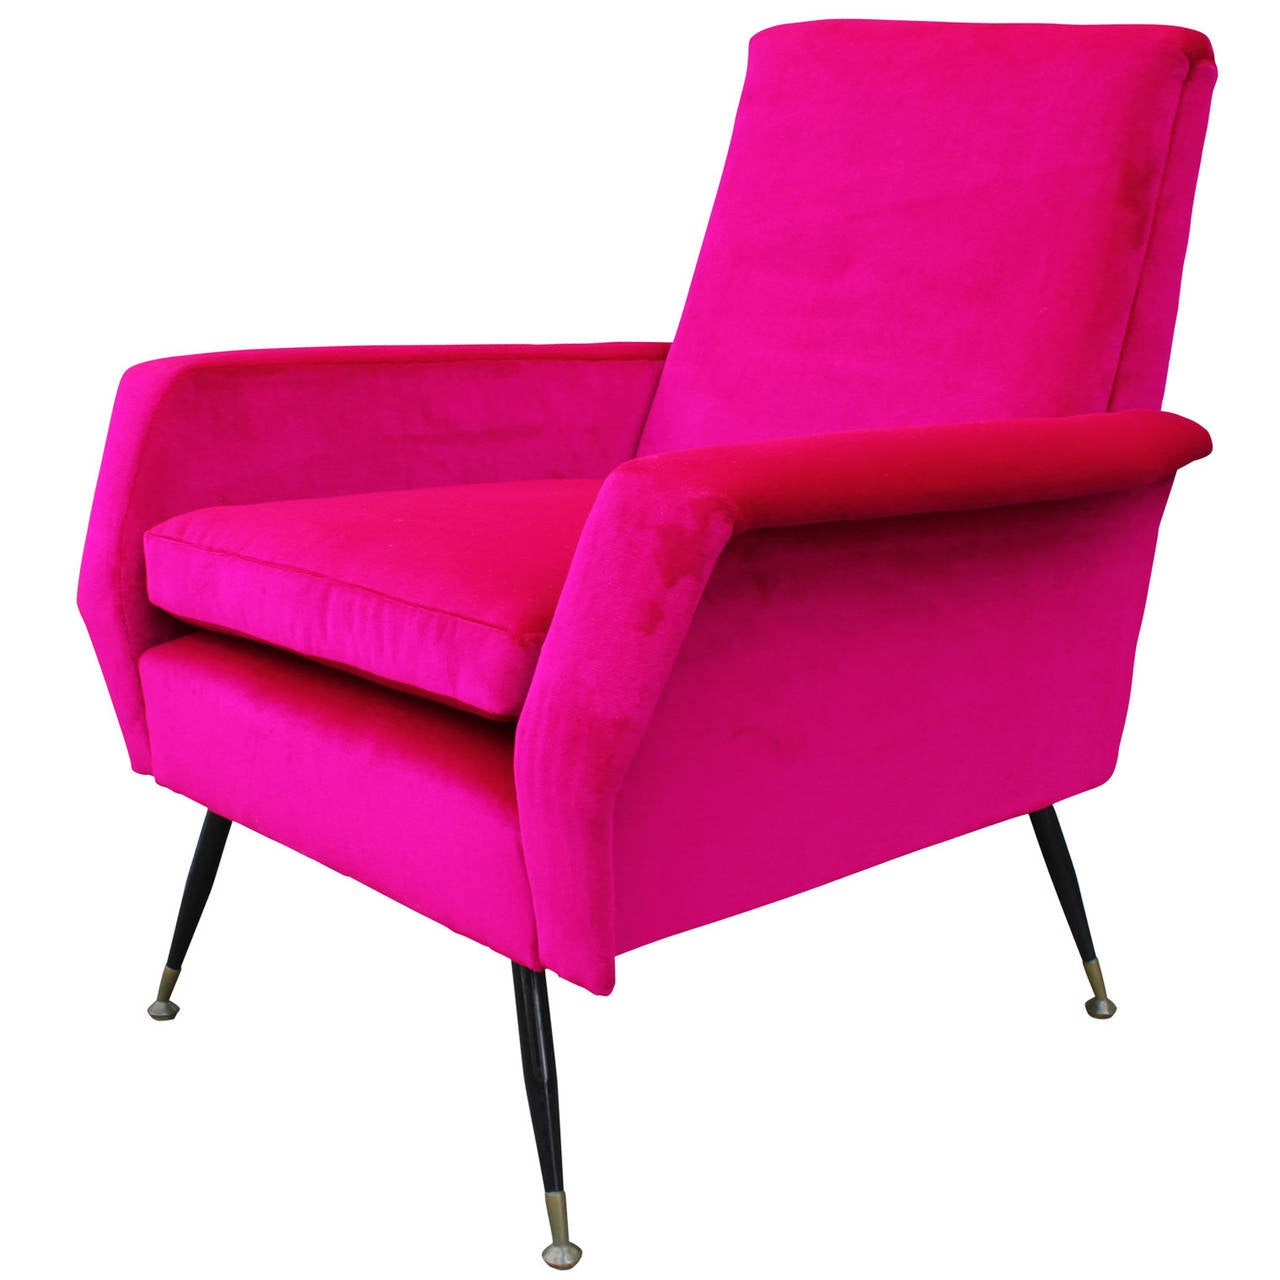 incredible bold pink velvet italian lounge chair at 1stdibs. Black Bedroom Furniture Sets. Home Design Ideas